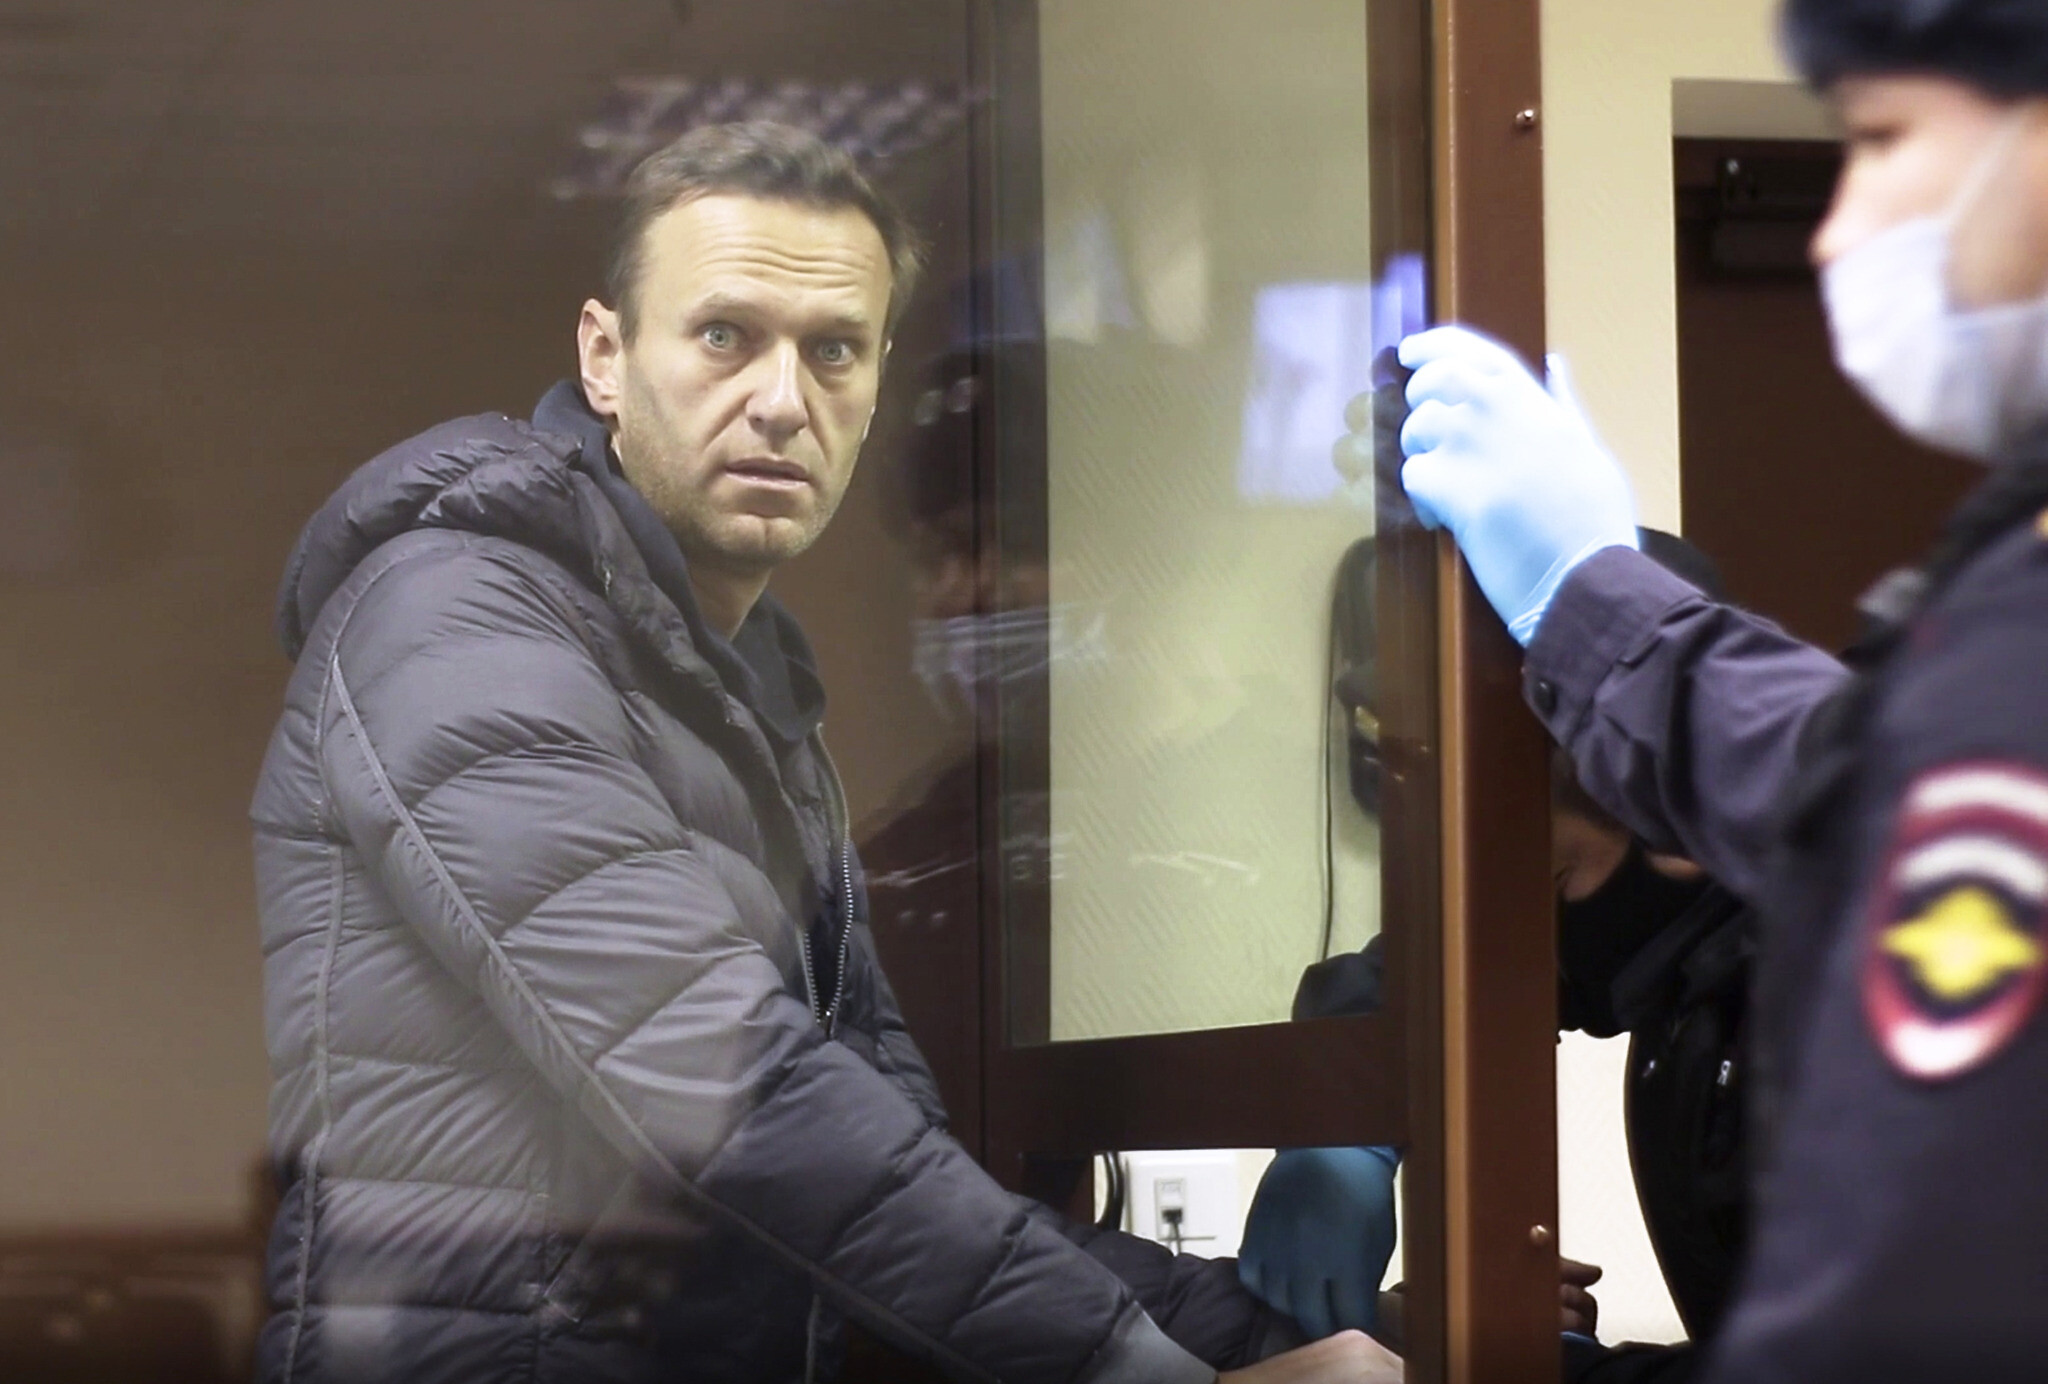 Kremlin critic Navalny could 'die any minute', say doctors